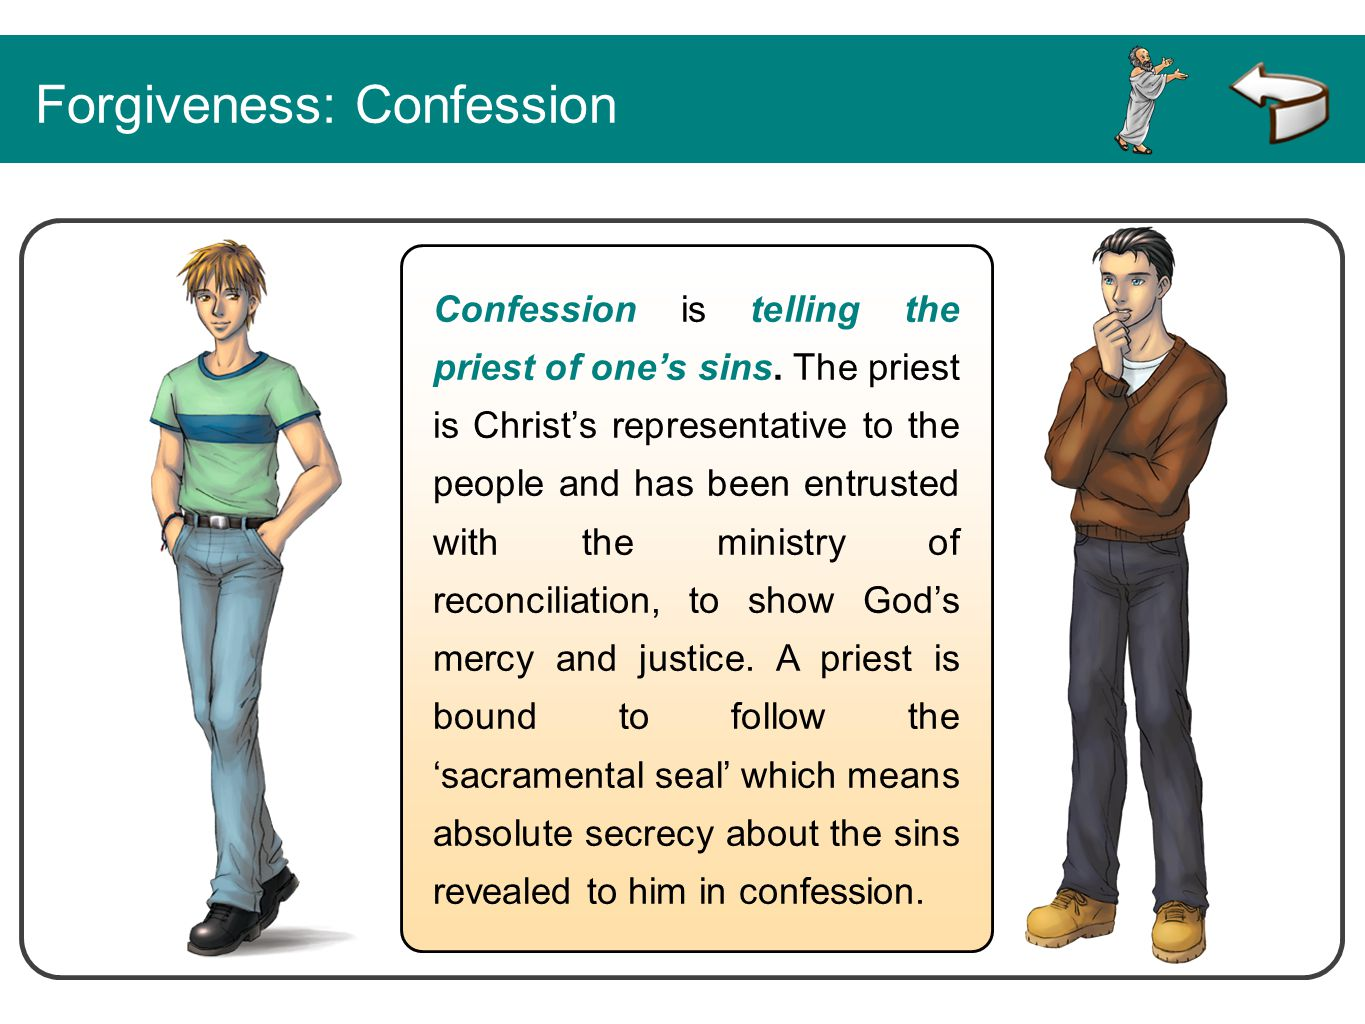 Confession is telling the priest of one's sins. The priest is Christ's representative to the people and has been entrusted with the ministry of reconc